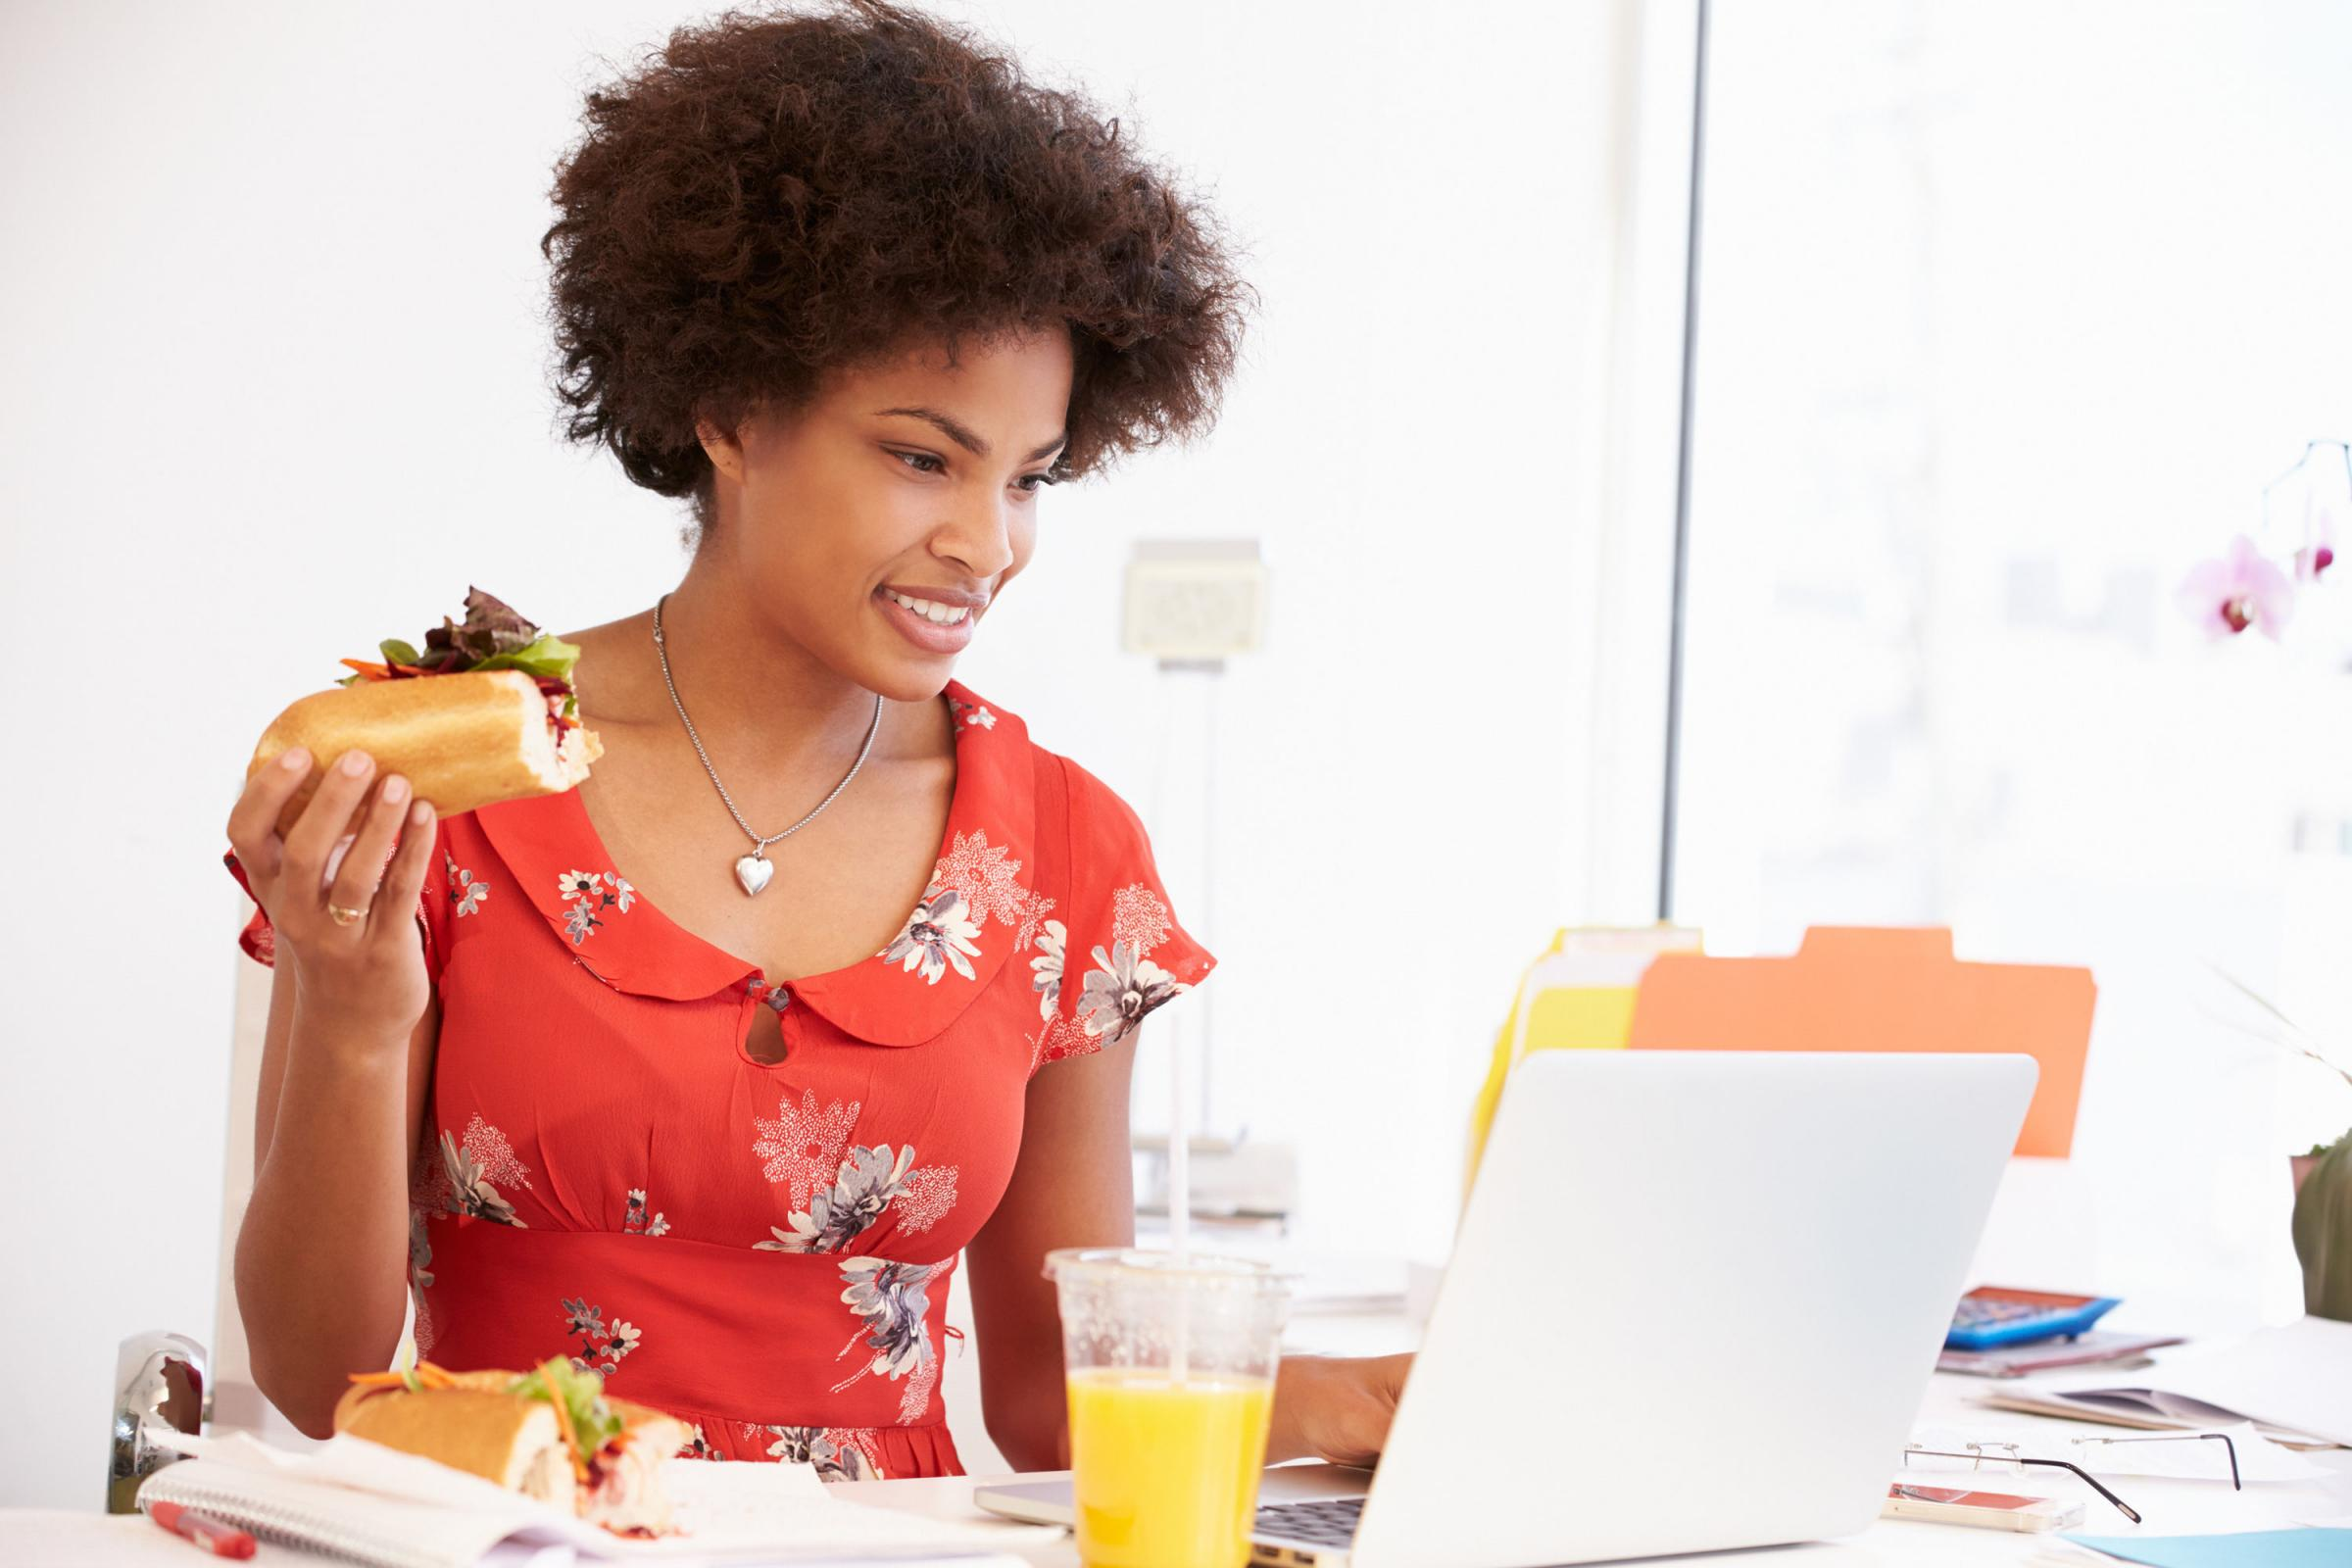 Woman Working In Design Studio Having Lunch At Desk